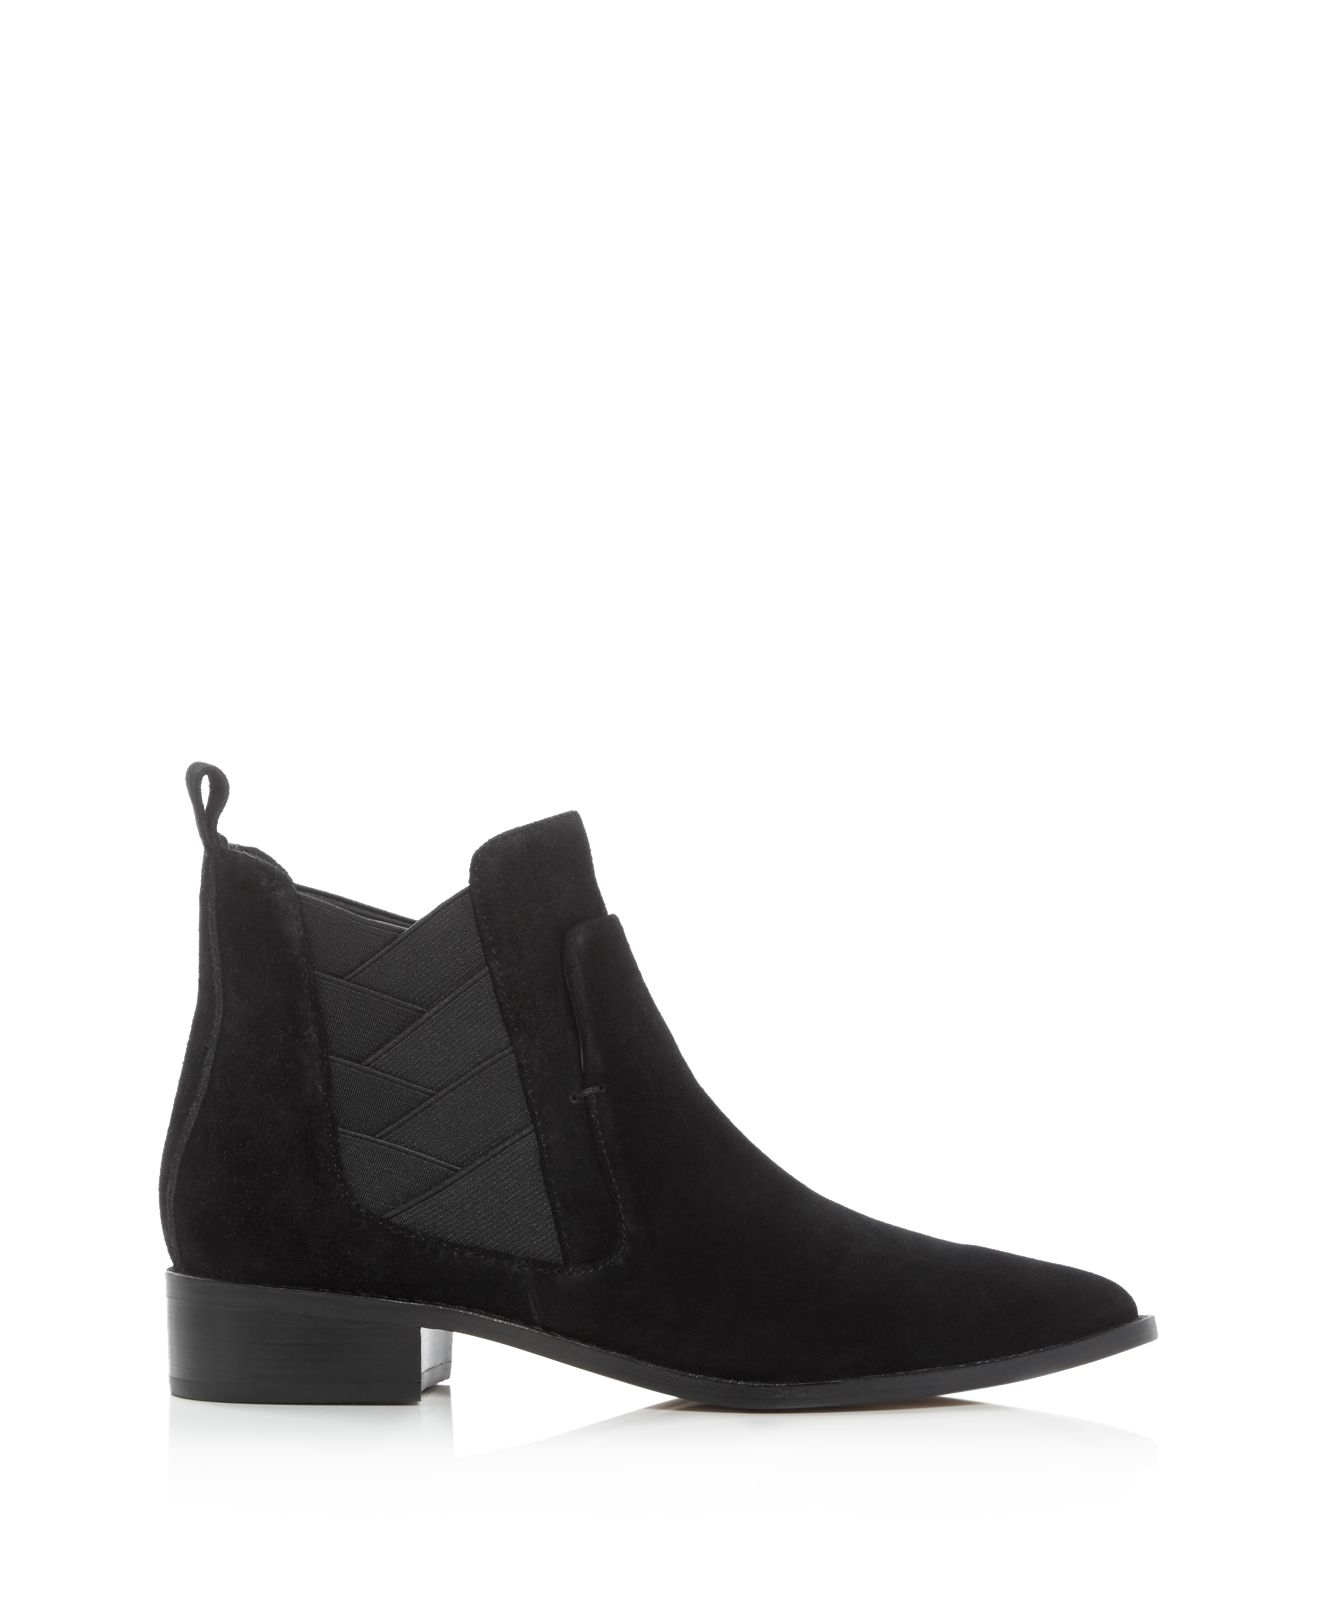 Rebecca Minkoff Suede Jacy Pointed Toe Booties in Black